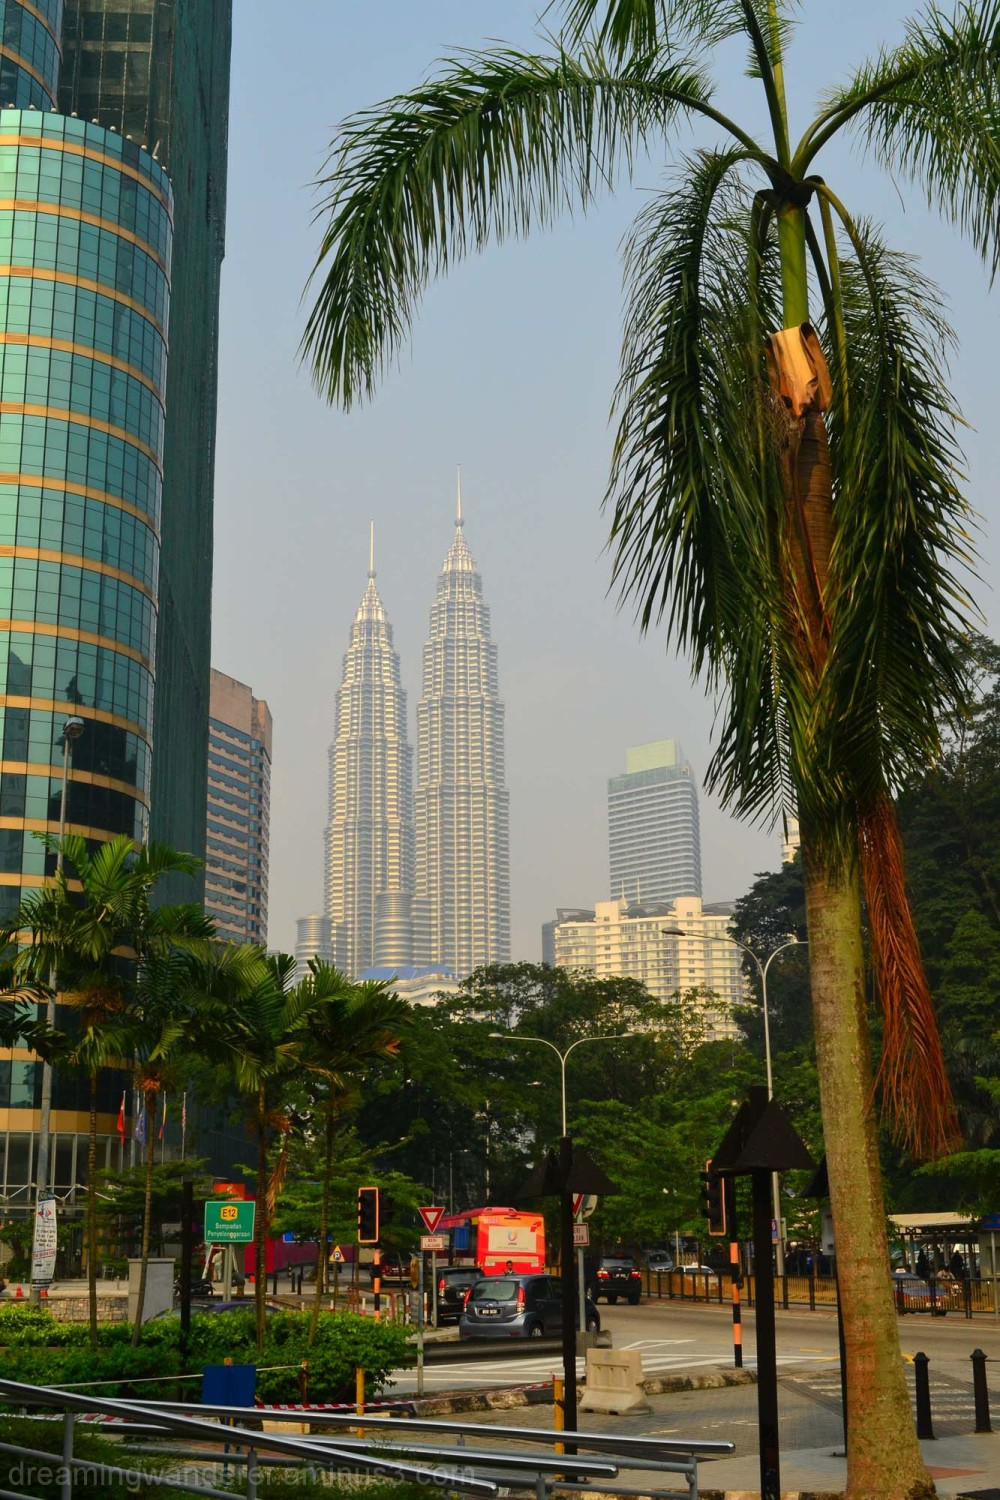 The pride and joy of KL